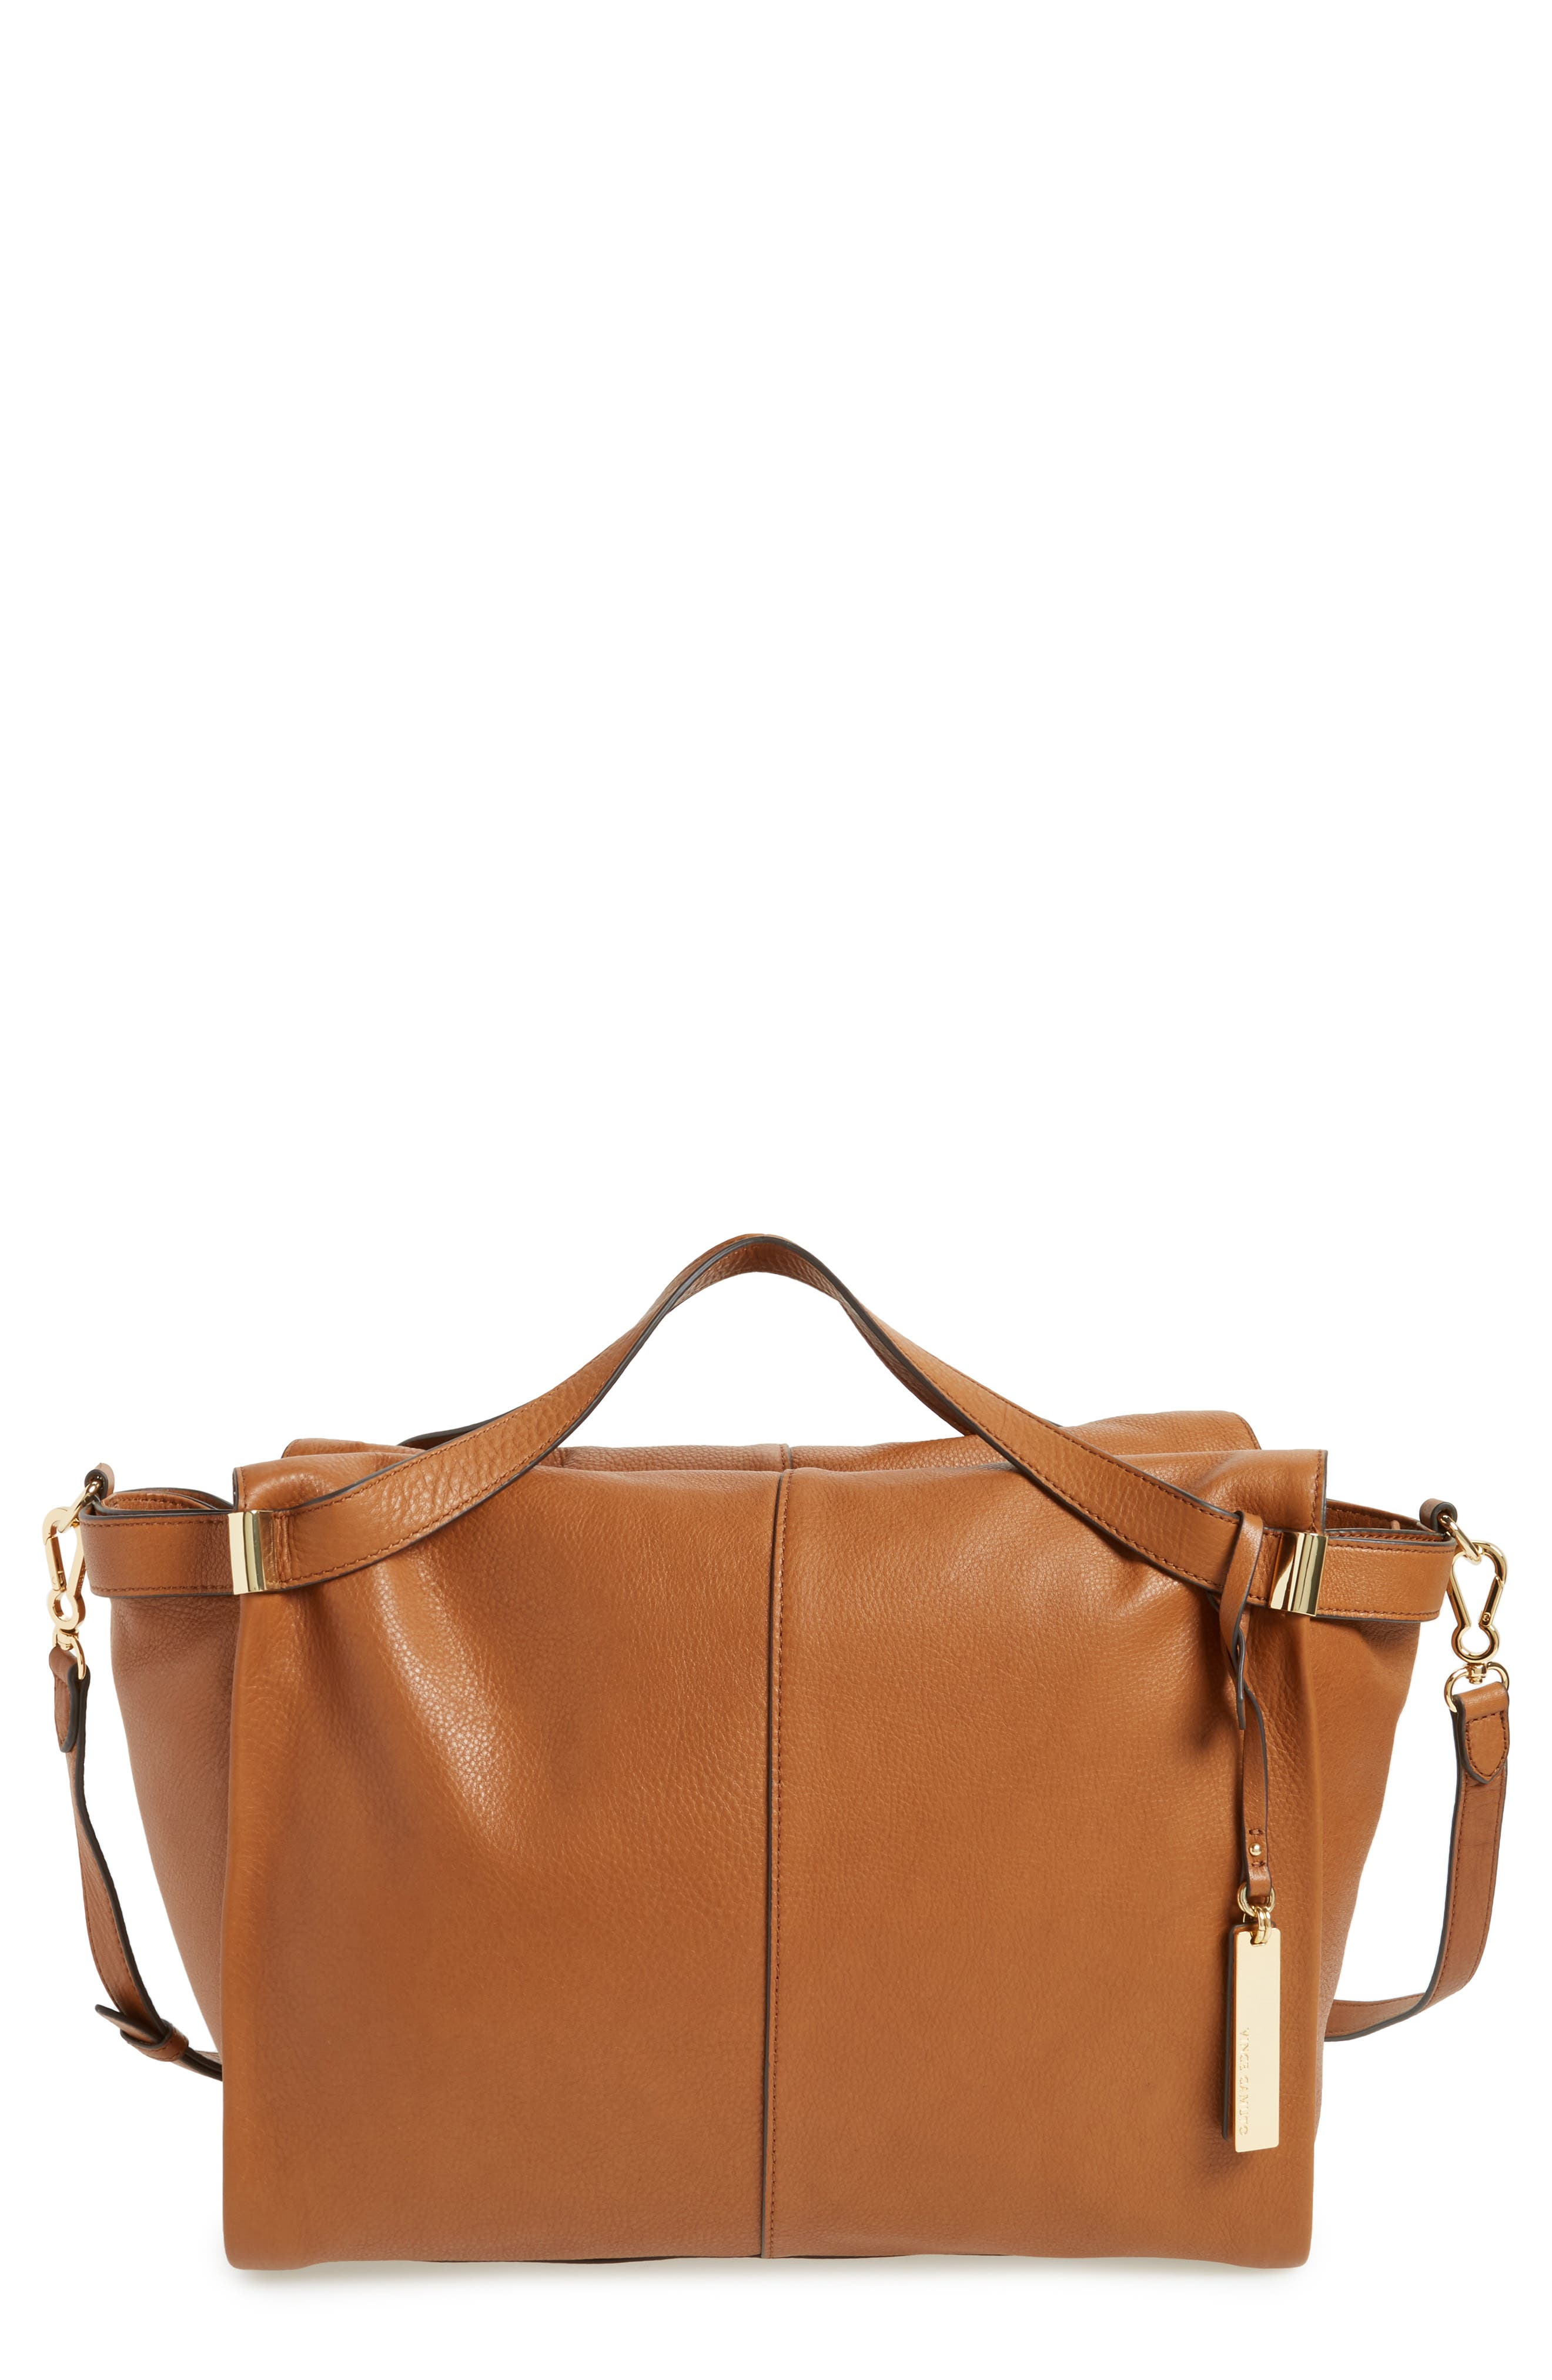 Rosen Leather Satchel,                             Main thumbnail 1, color,                             Dark Rum